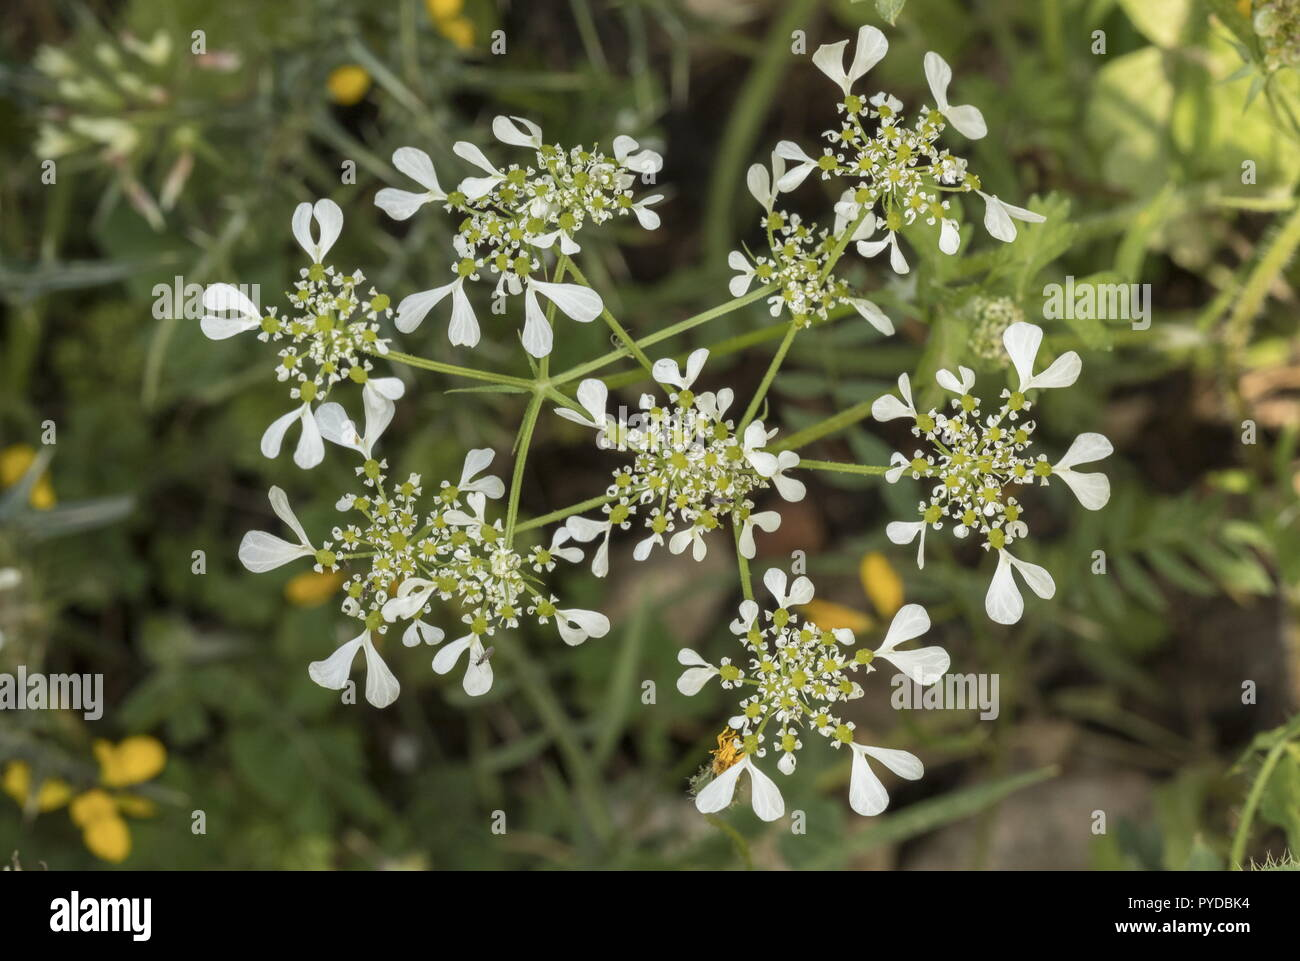 Mediterranean hartwort, Tordylium apulum in flower; Rhodes. Stock Photo